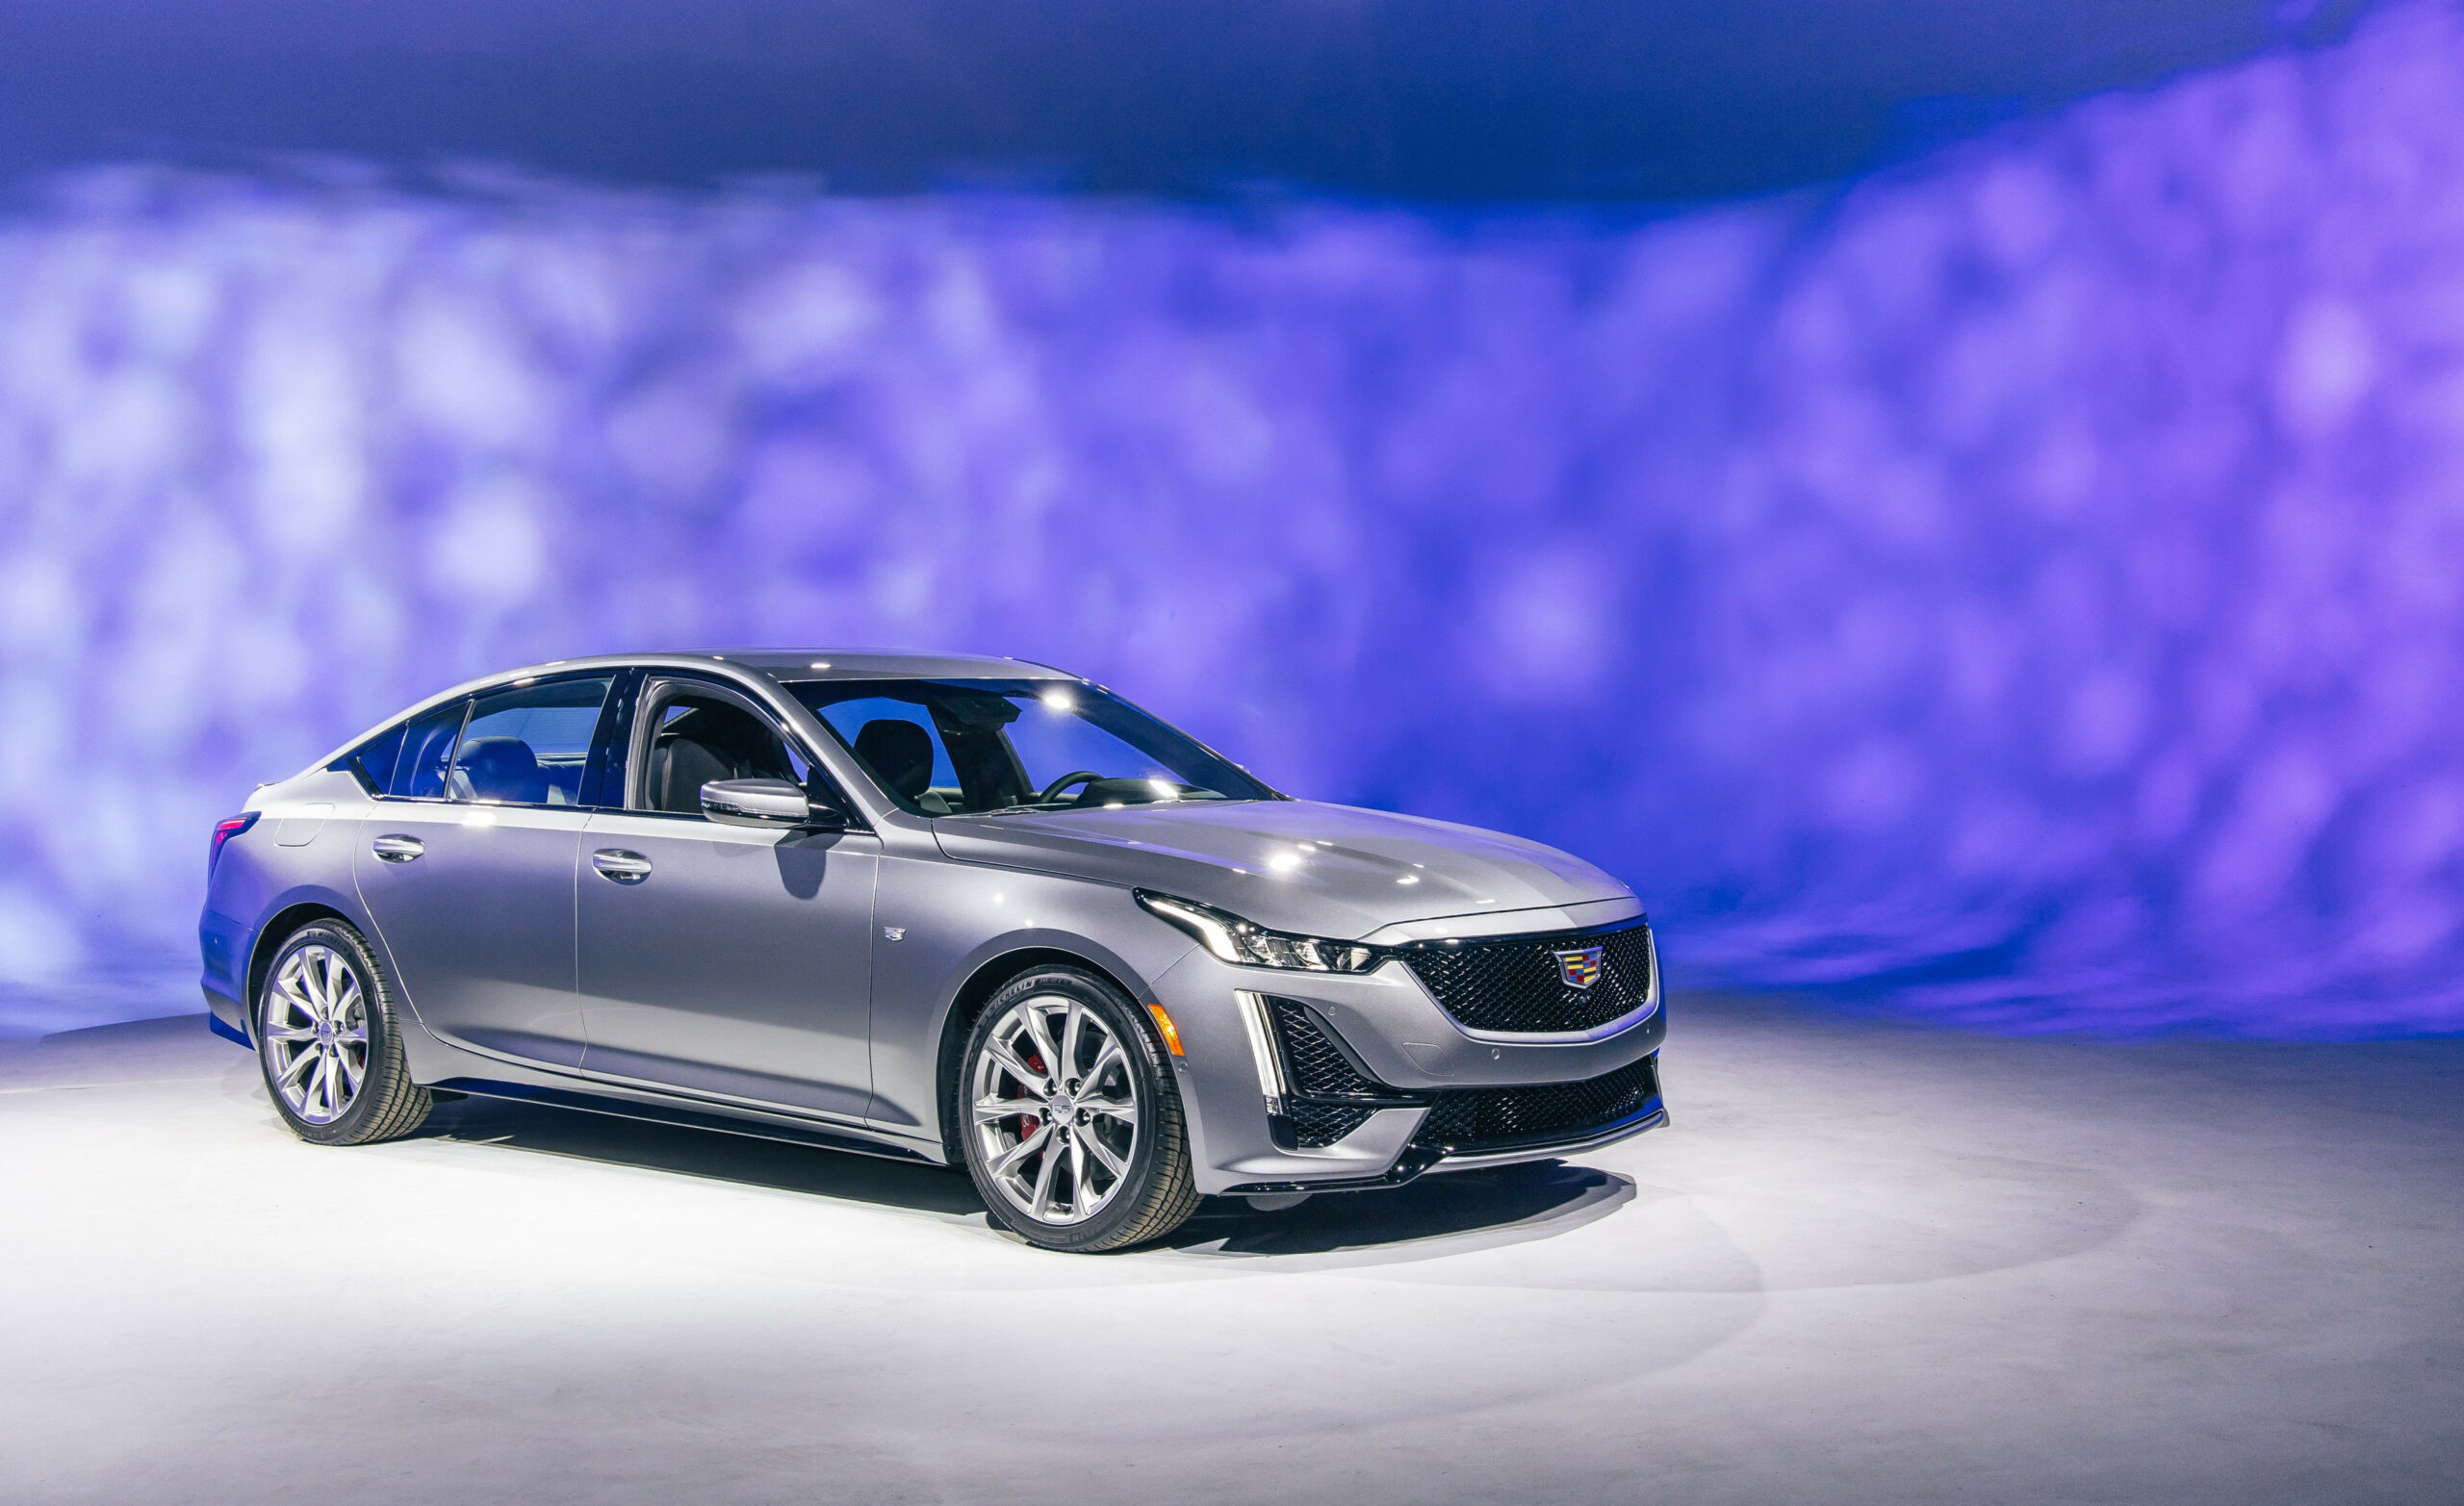 6 Cadillac CT6 Sports Sedan – Release Date, Info, Specs - 2020 cadillac options